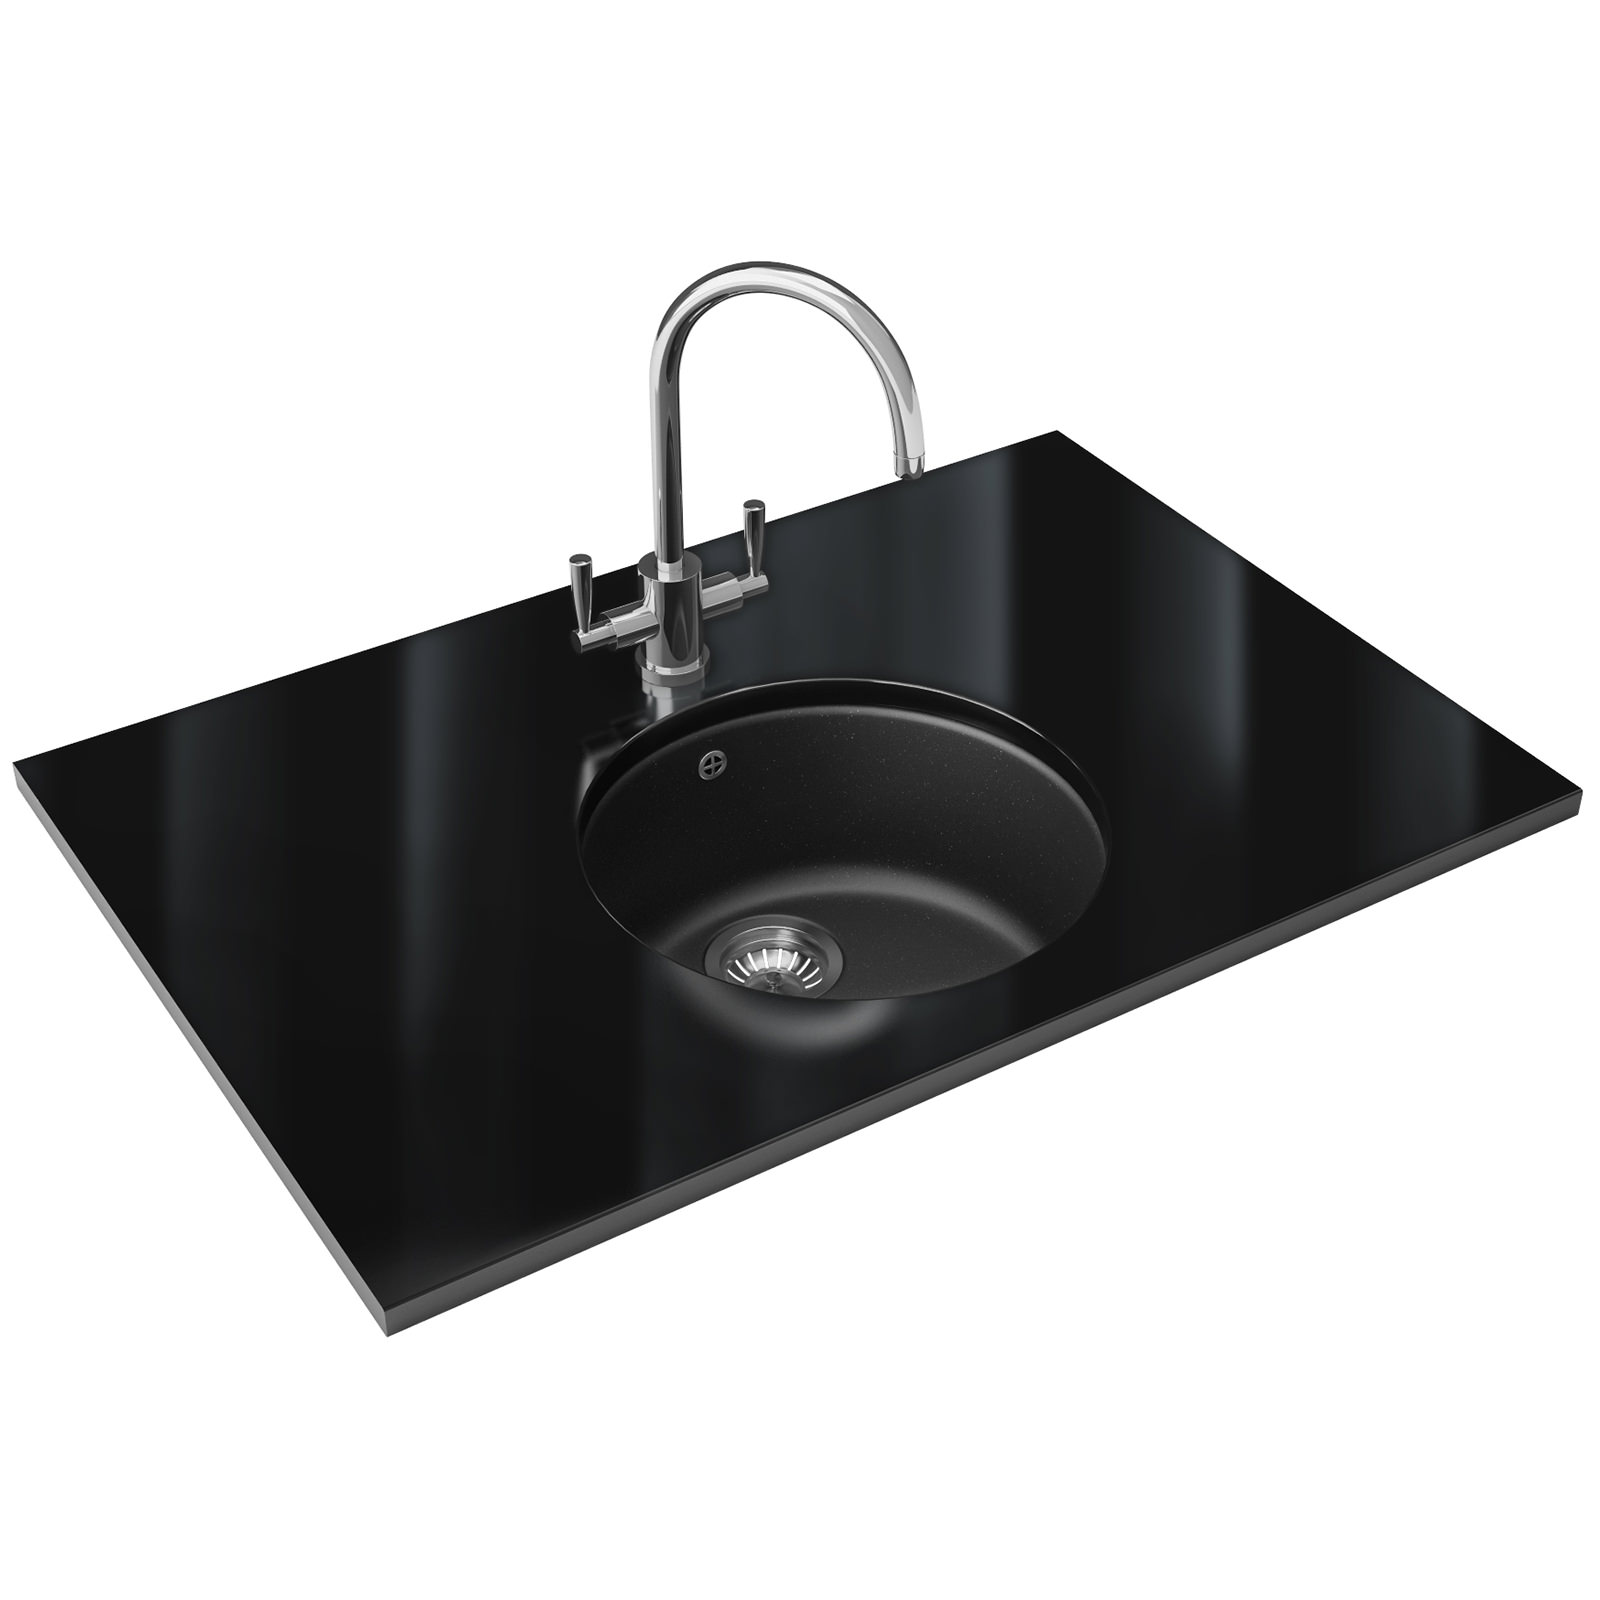 Franke Fragranite Undermount Sink : Franke Rotondo RUG 110 Fragranite Graphite 1.0 Bowl Undermount Sink ...